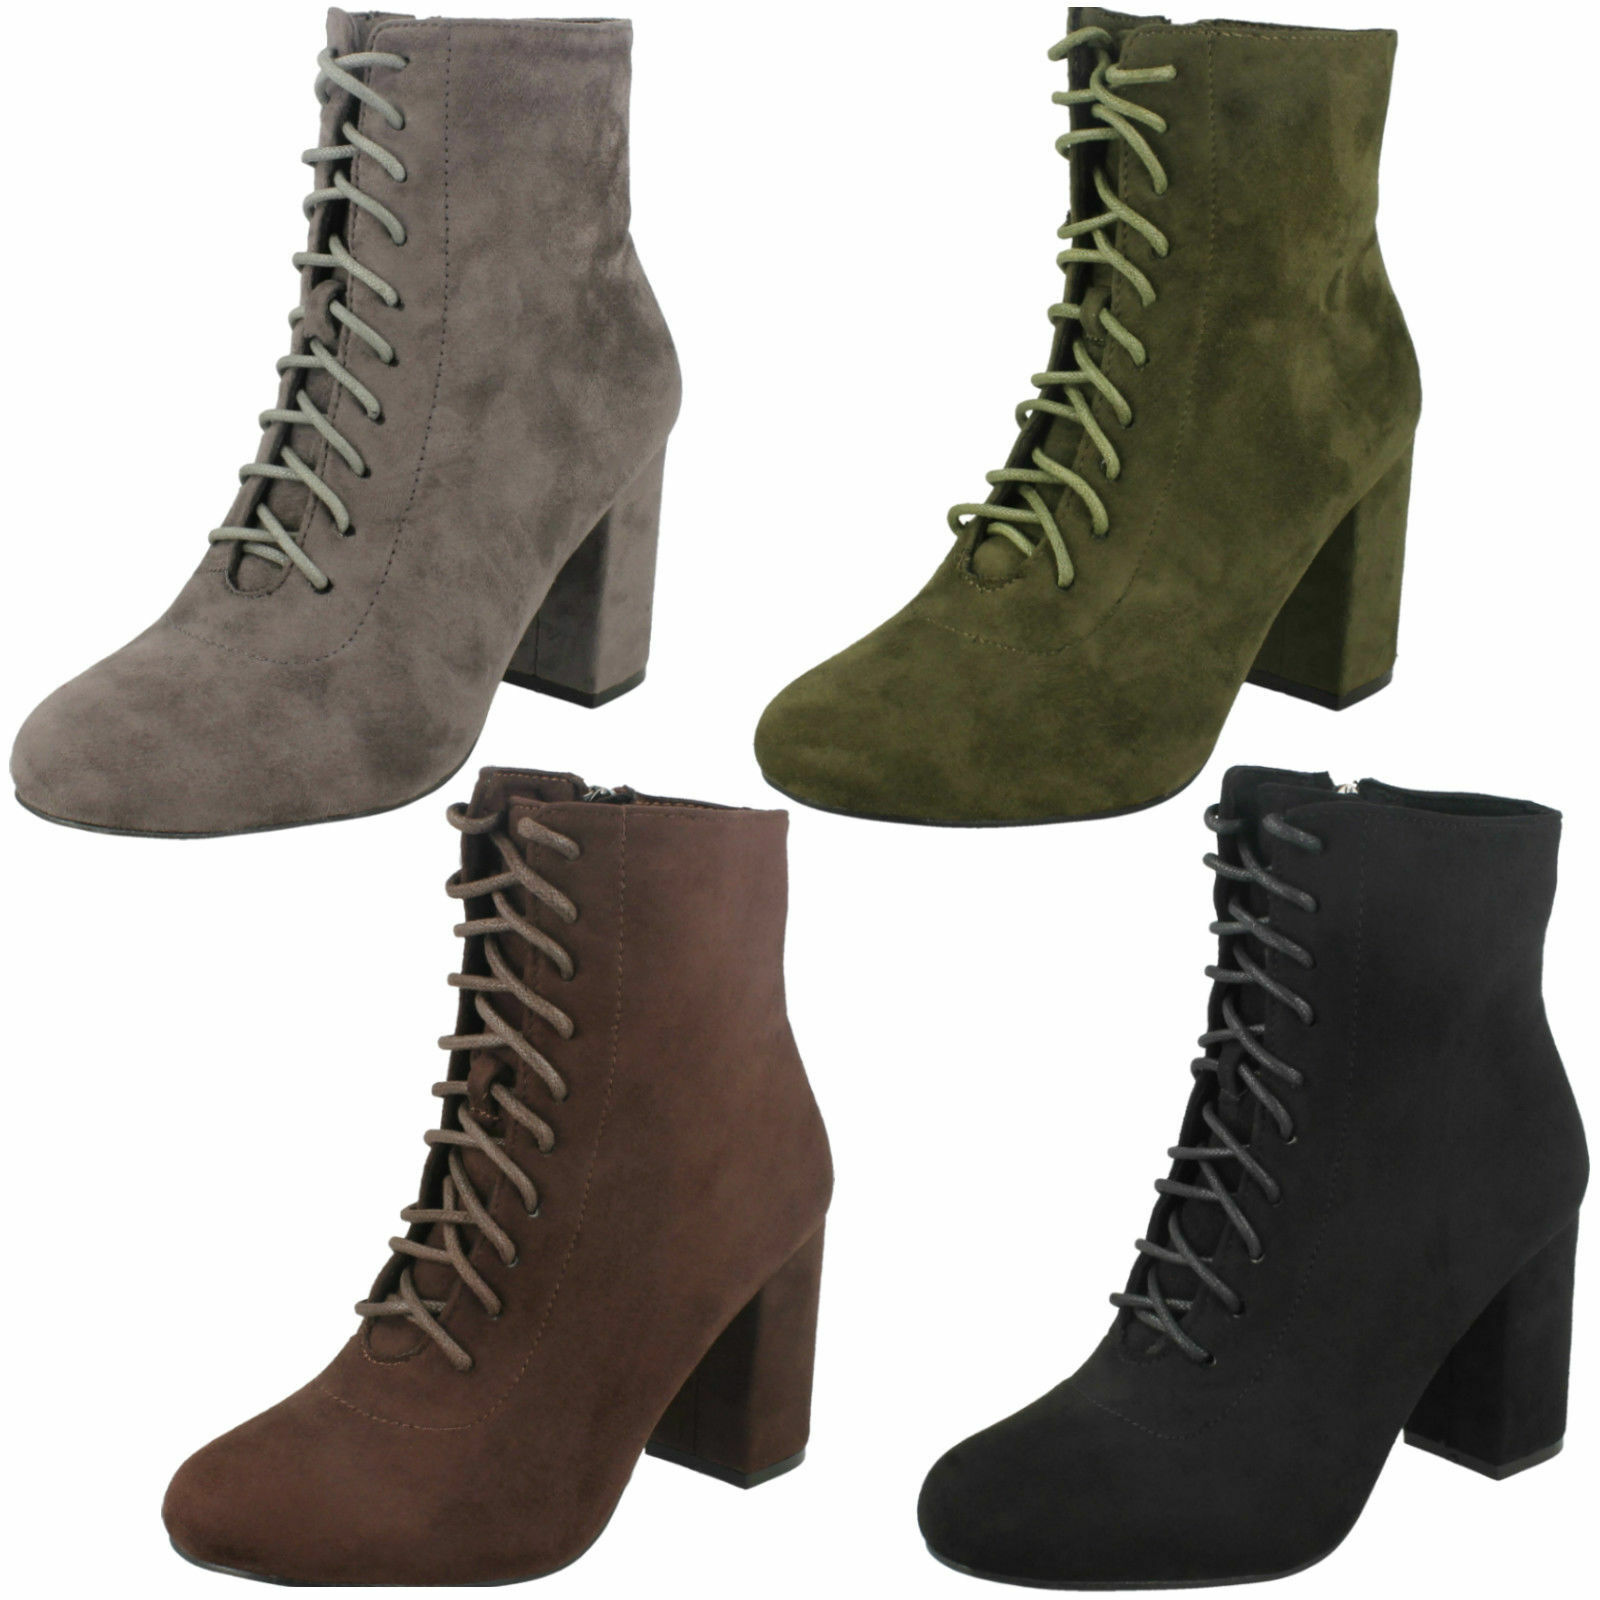 LADIES SPOT ON F50854 BLACK BROWN GREEN GREY LACE UP HEELED BOOTS UK SIZE 3 - 8